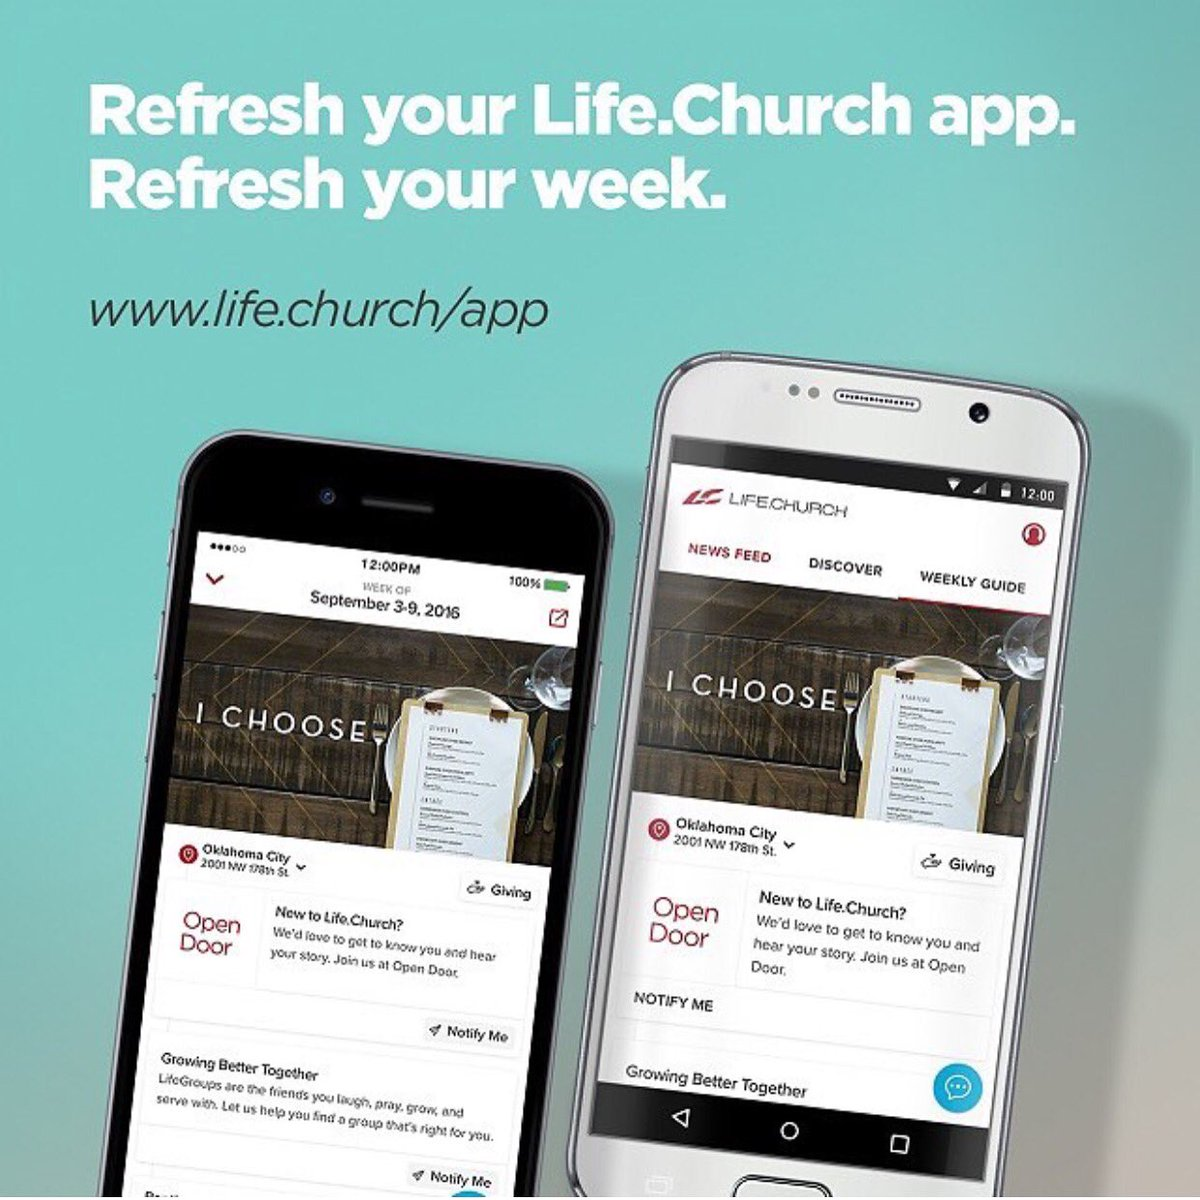 The weekly guide in your pocket! Connect w @lifechurch &your local campus like never before. https://t.co/B5tUS8gBDX https://t.co/A9XacFOr8Y